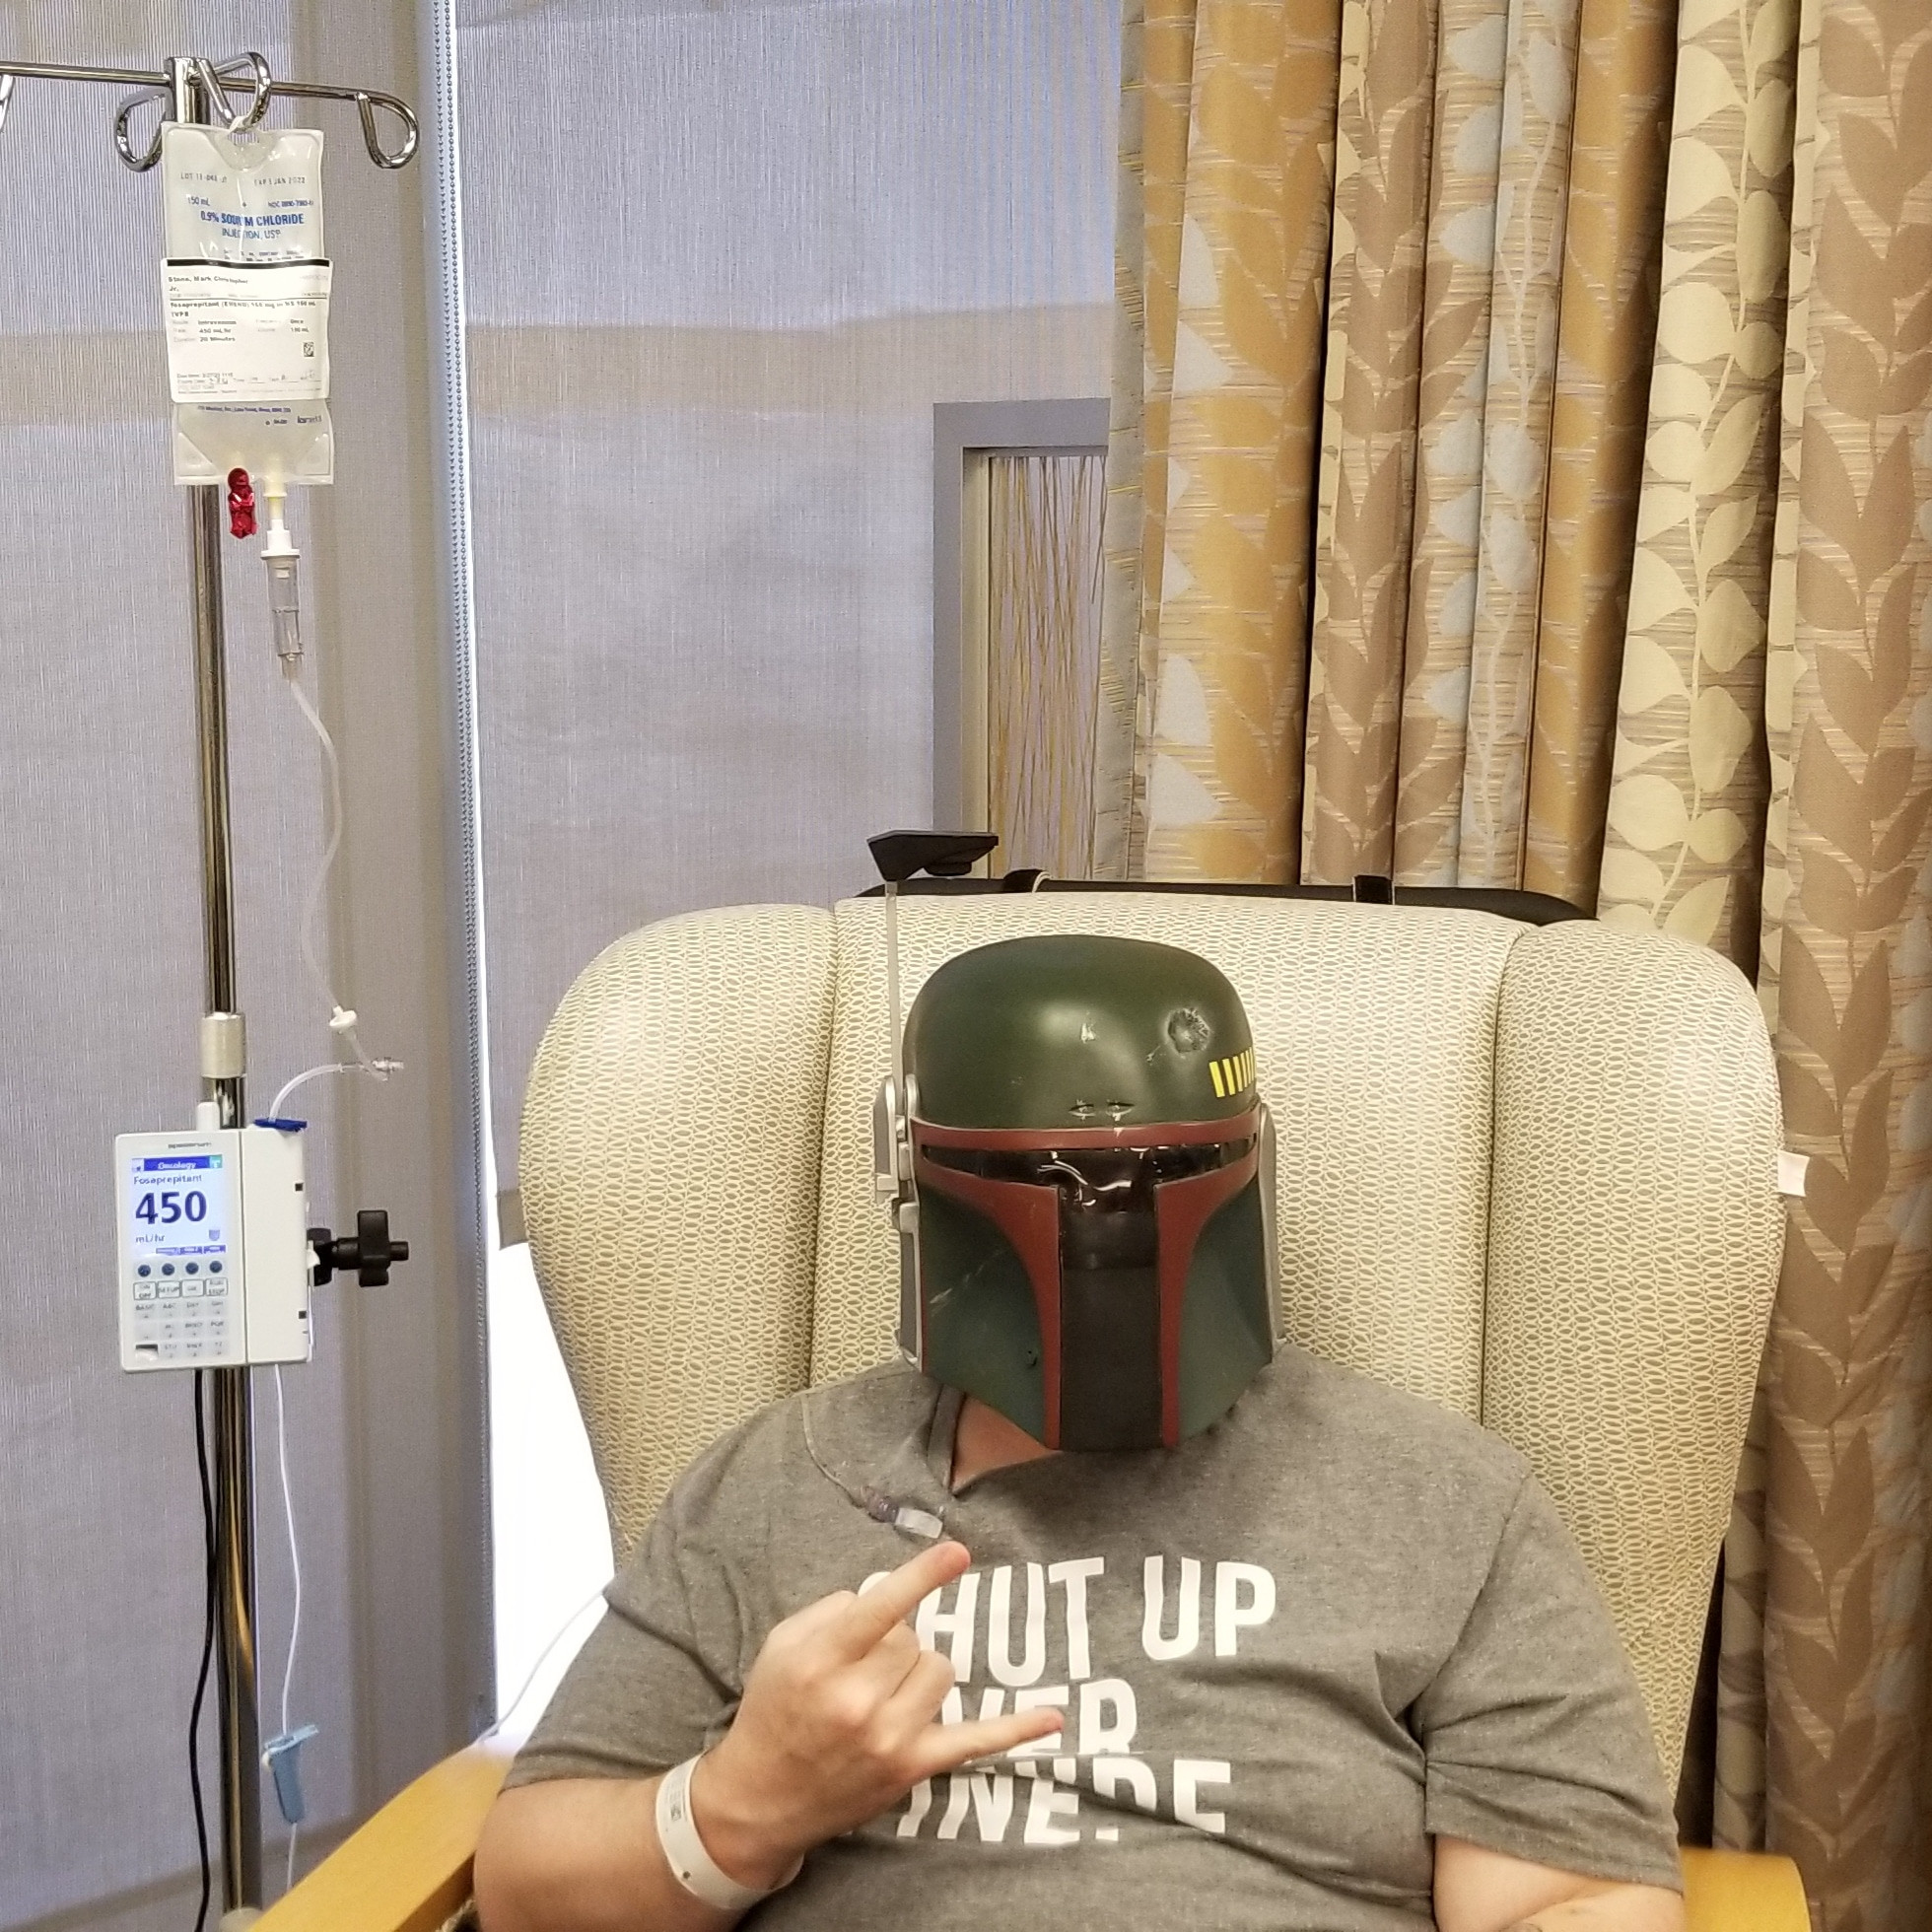 Decided to protect myself during chemo as a true Star Wars fan should